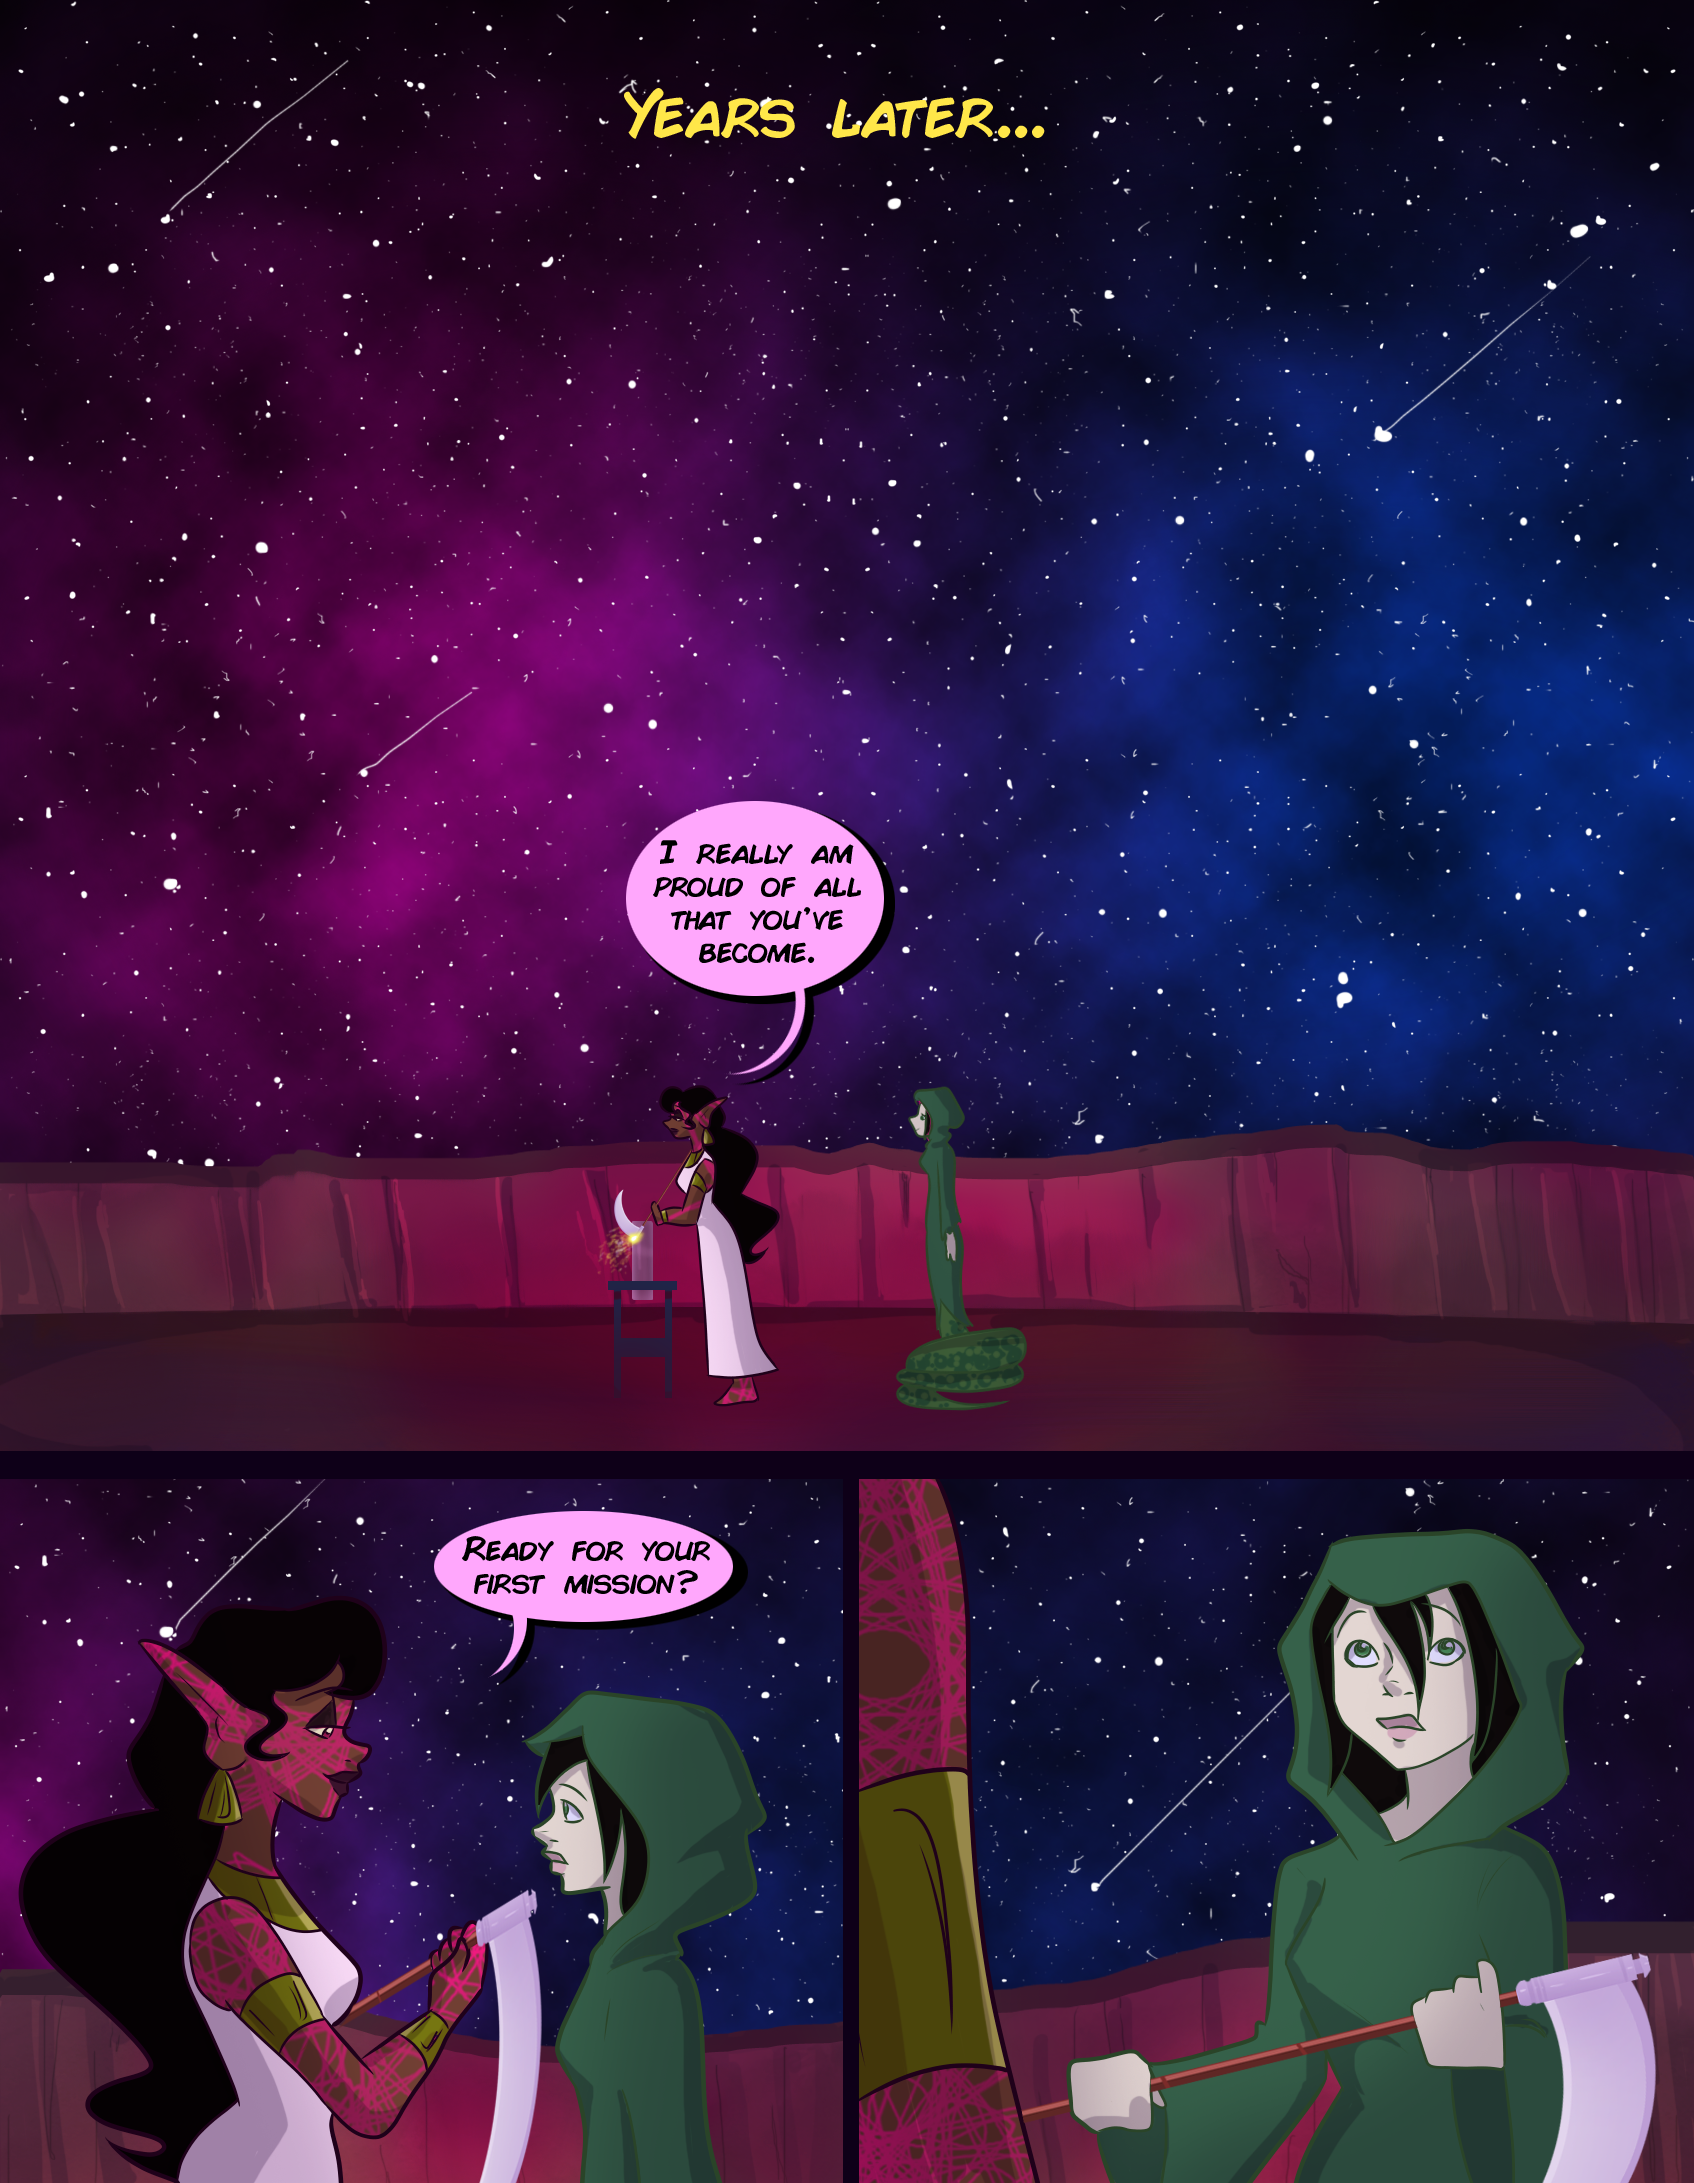 Patricia: Page 178